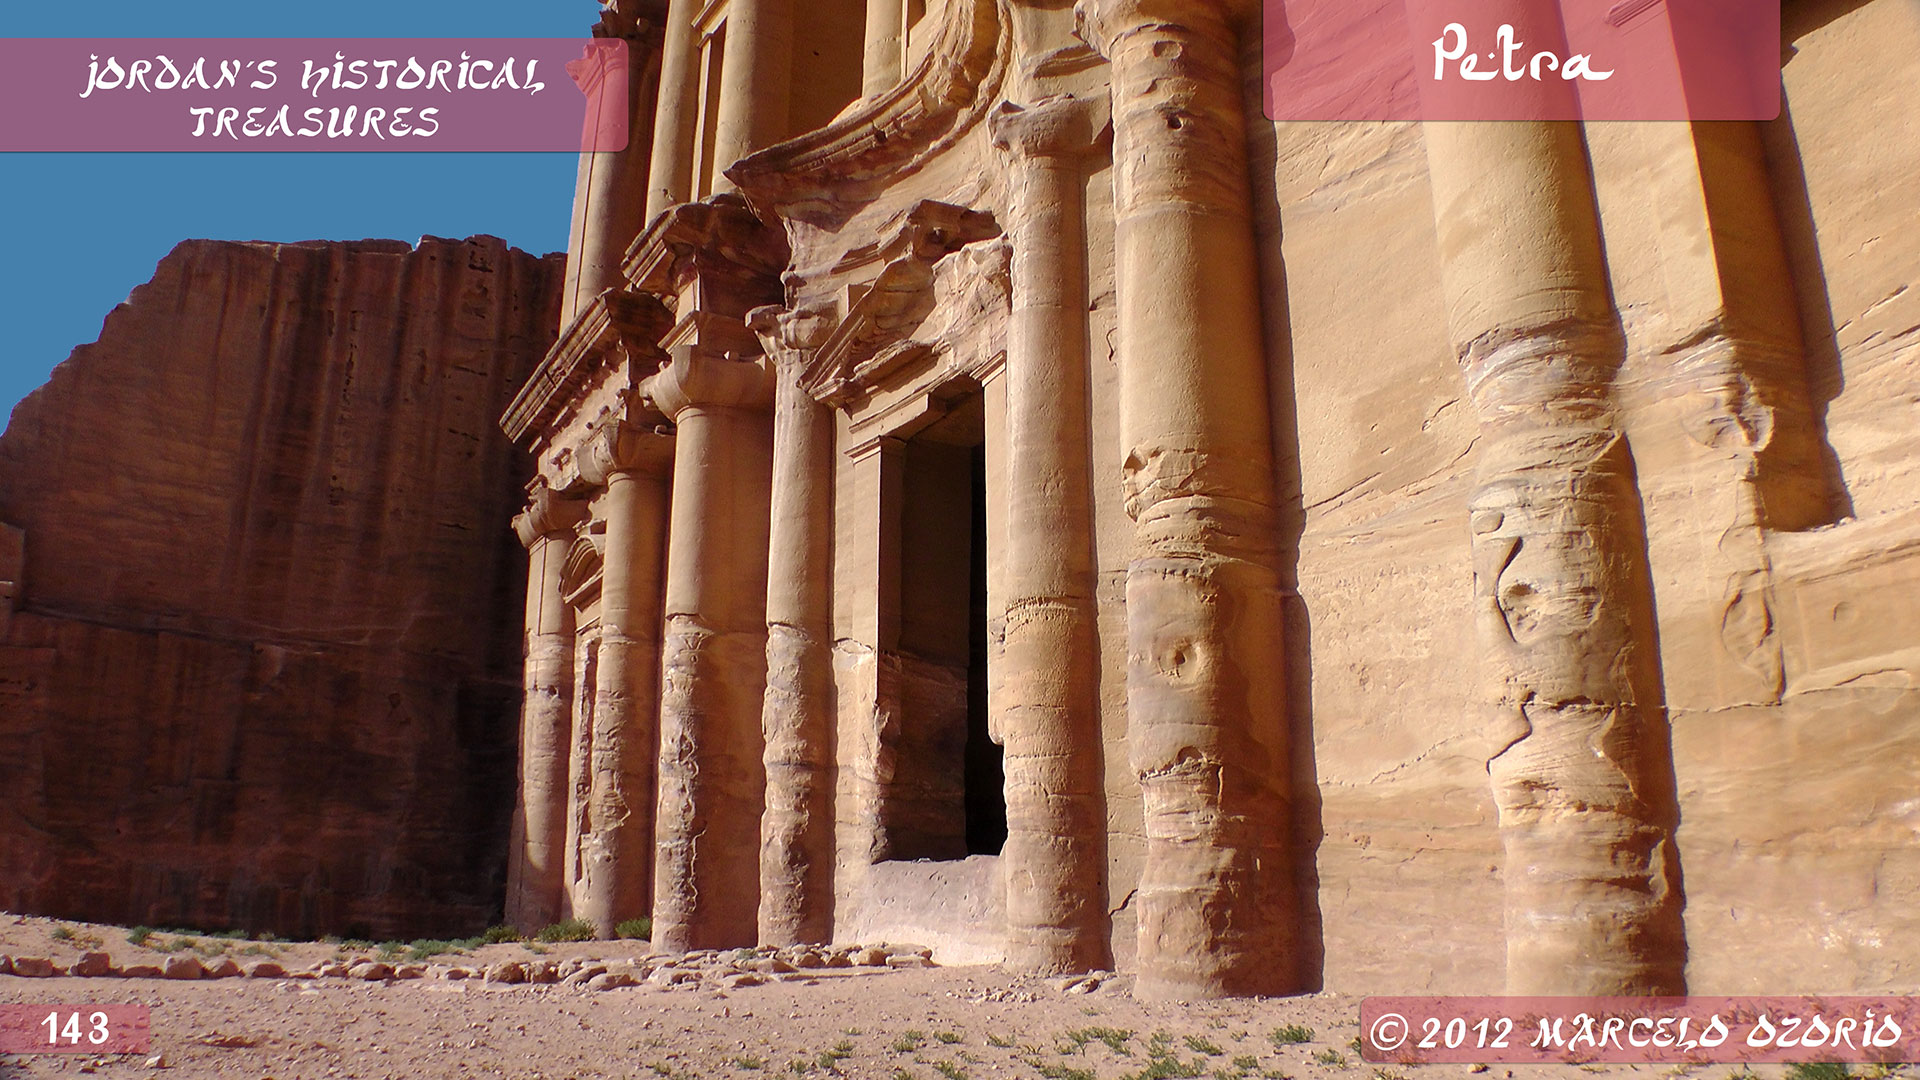 Petra Archaeological City Jordan 63 - The Astonishing Treasure at Petra - Jordan